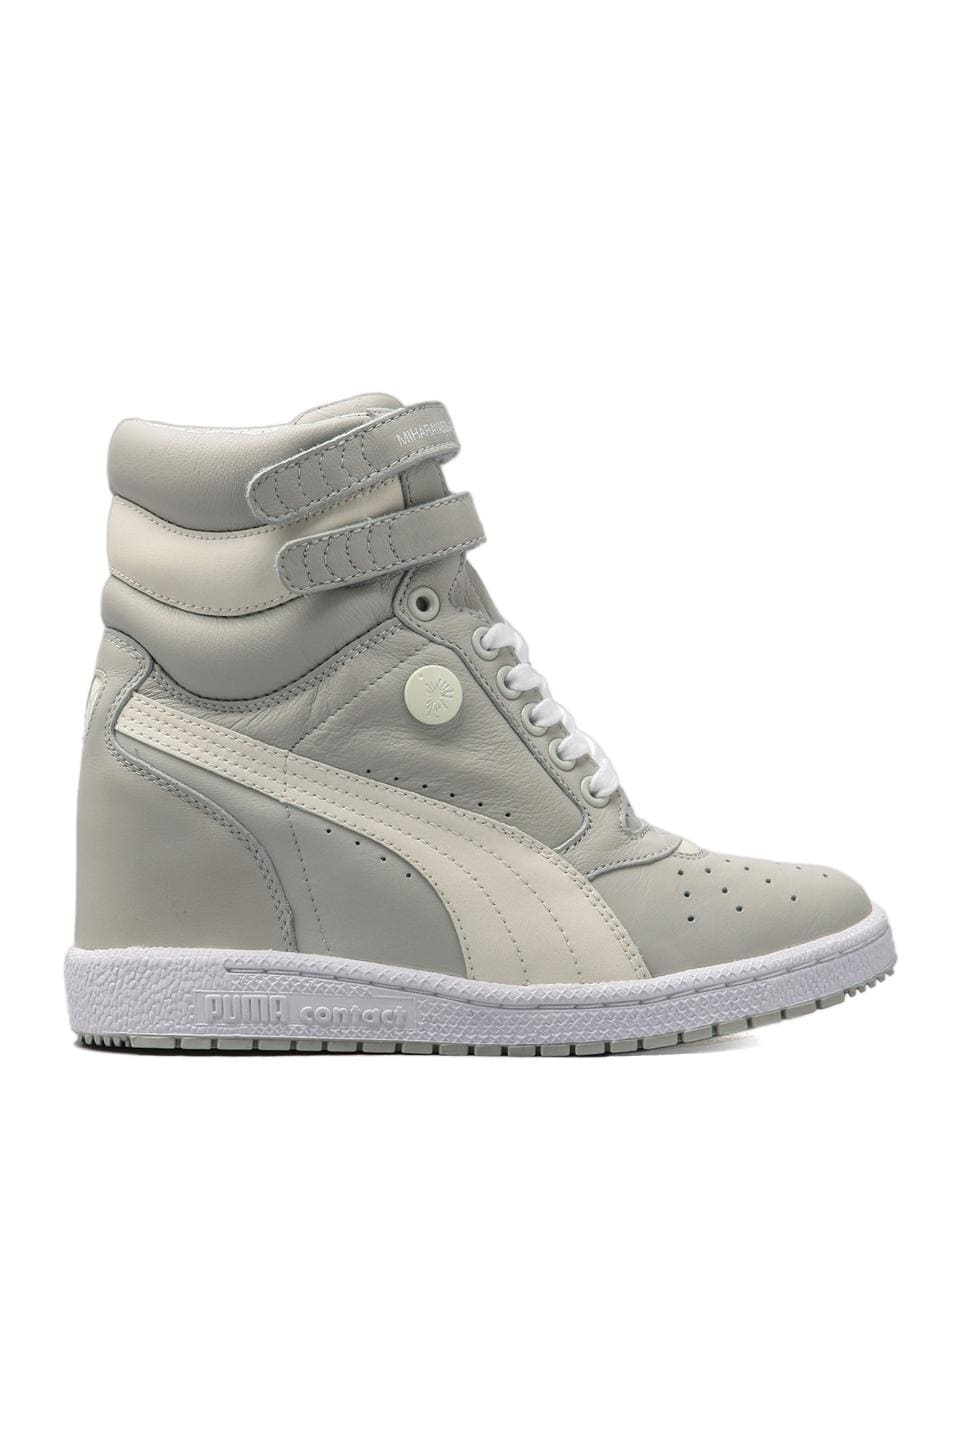 Puma by Mihara MY-66 Sneaker in Grey Violet